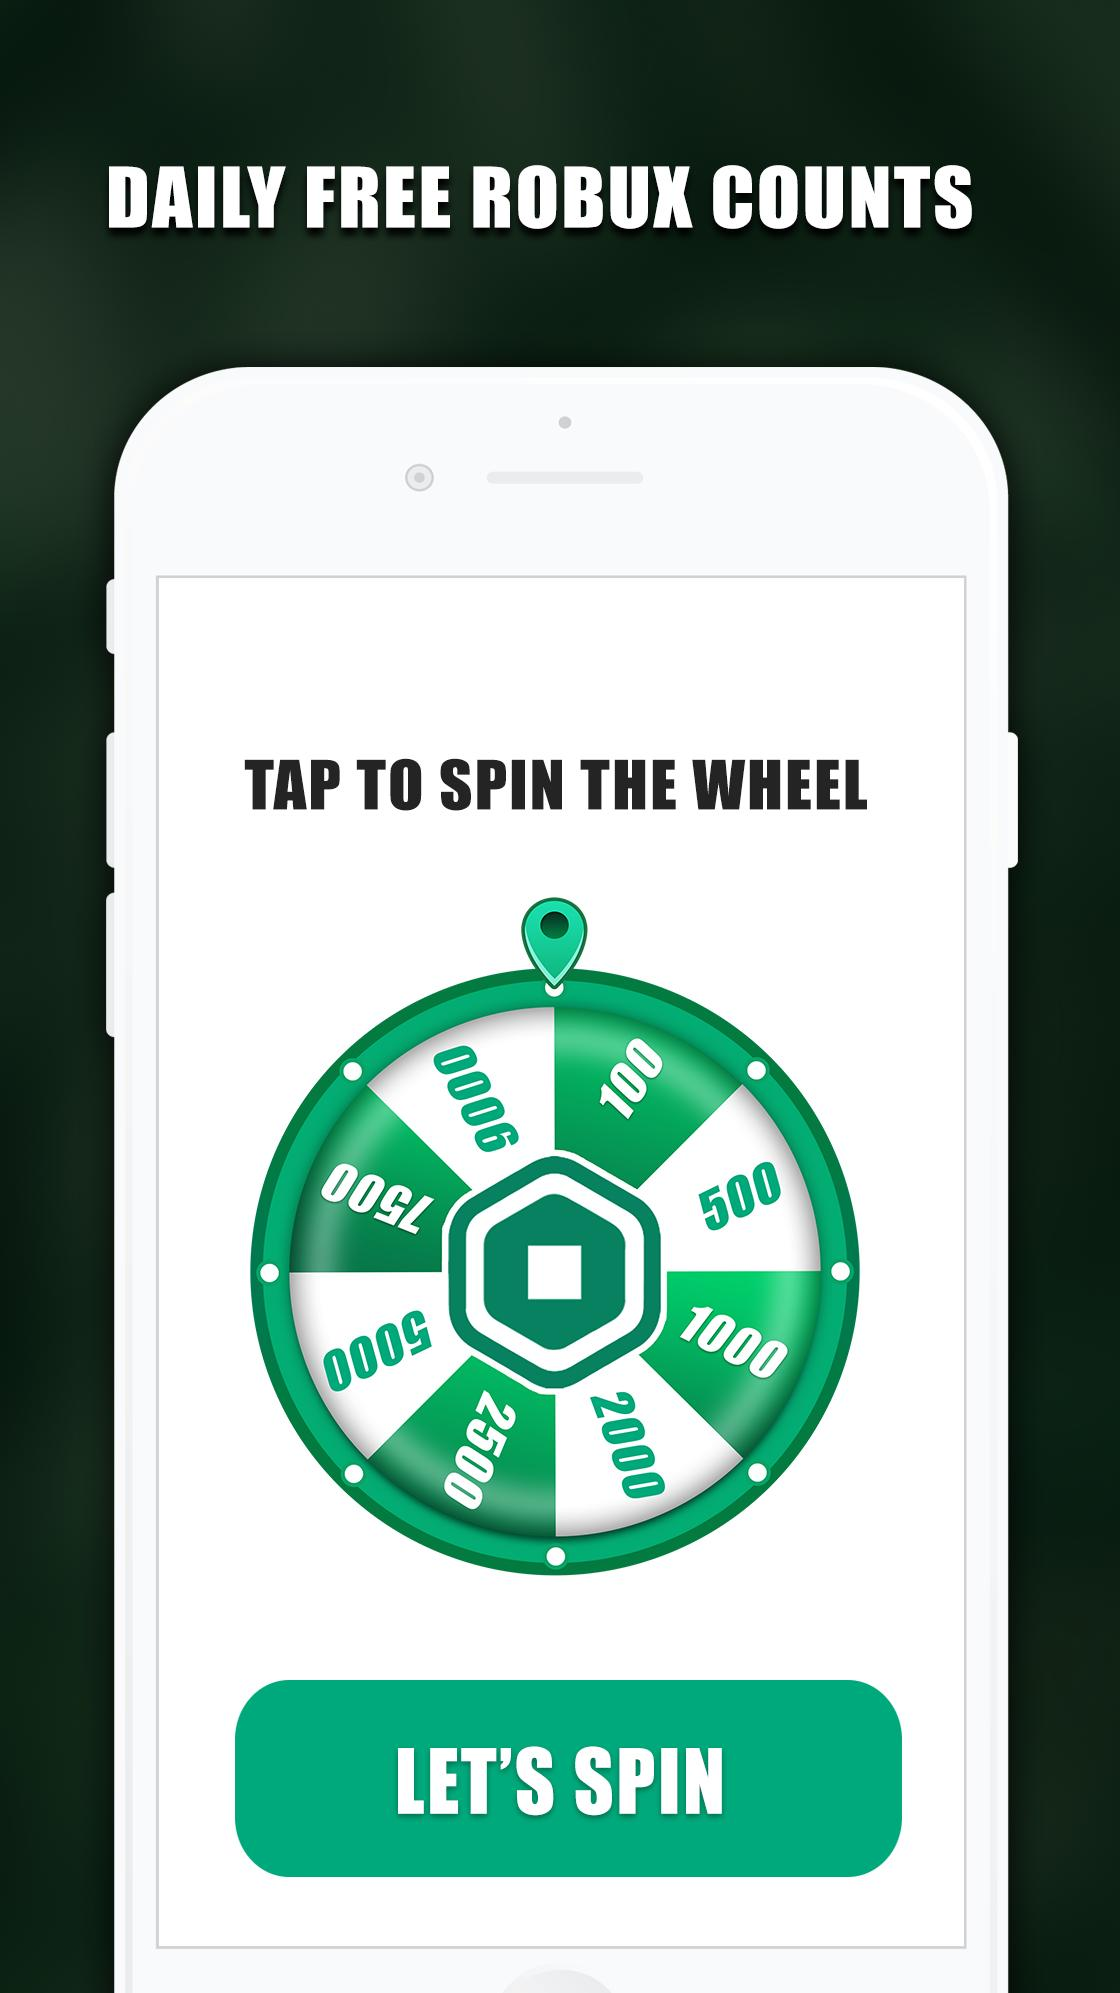 Free Robux Counter Rbx Spin Wheel 2020 For Android Apk